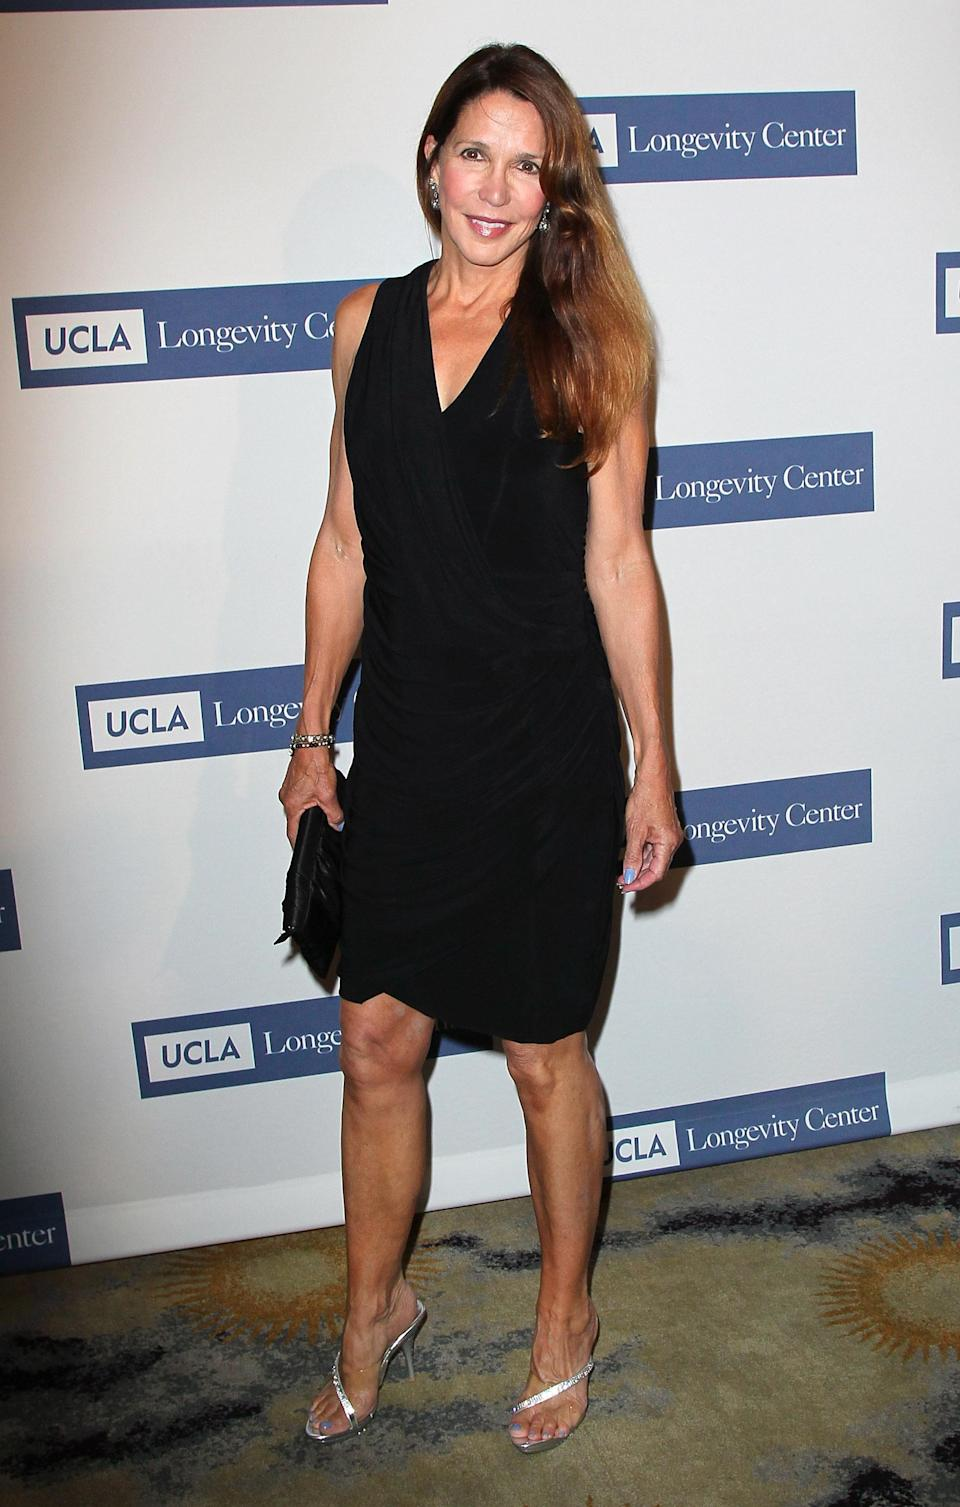 Patti Davis, the daughter of President Ronald Reagan and the late Nancy Reagan, has disclosed in a Washington Post essay that she was sexually assaulted. (Photo: Getty Images)